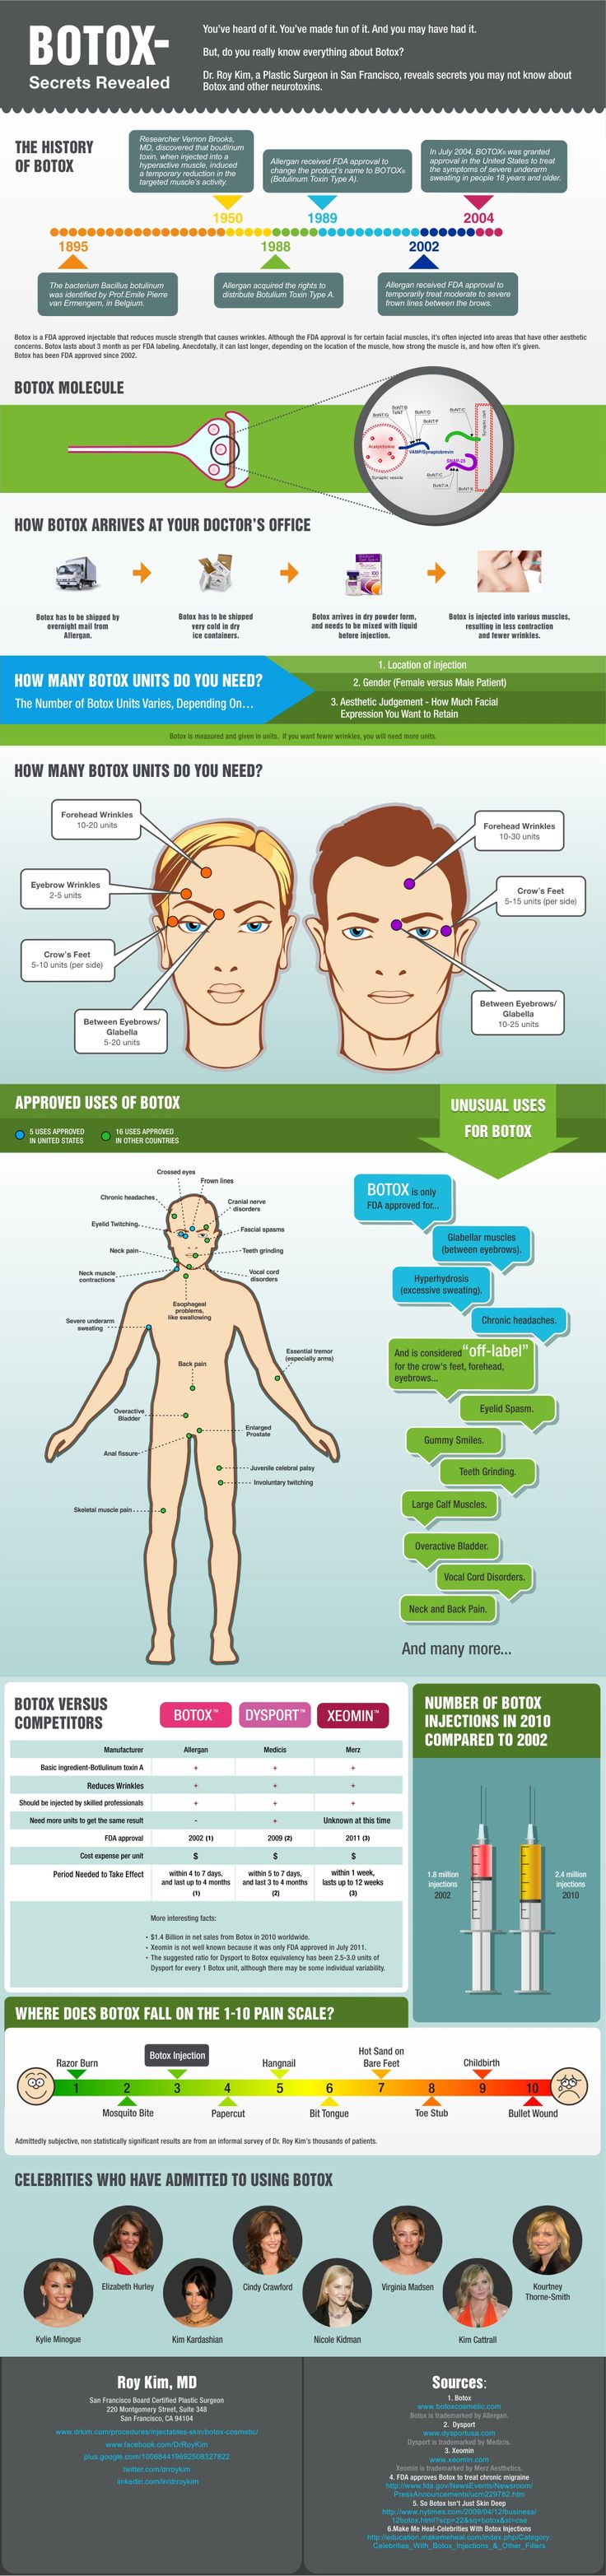 Botox infographic!  http://www.timelessskinsolutions.com/